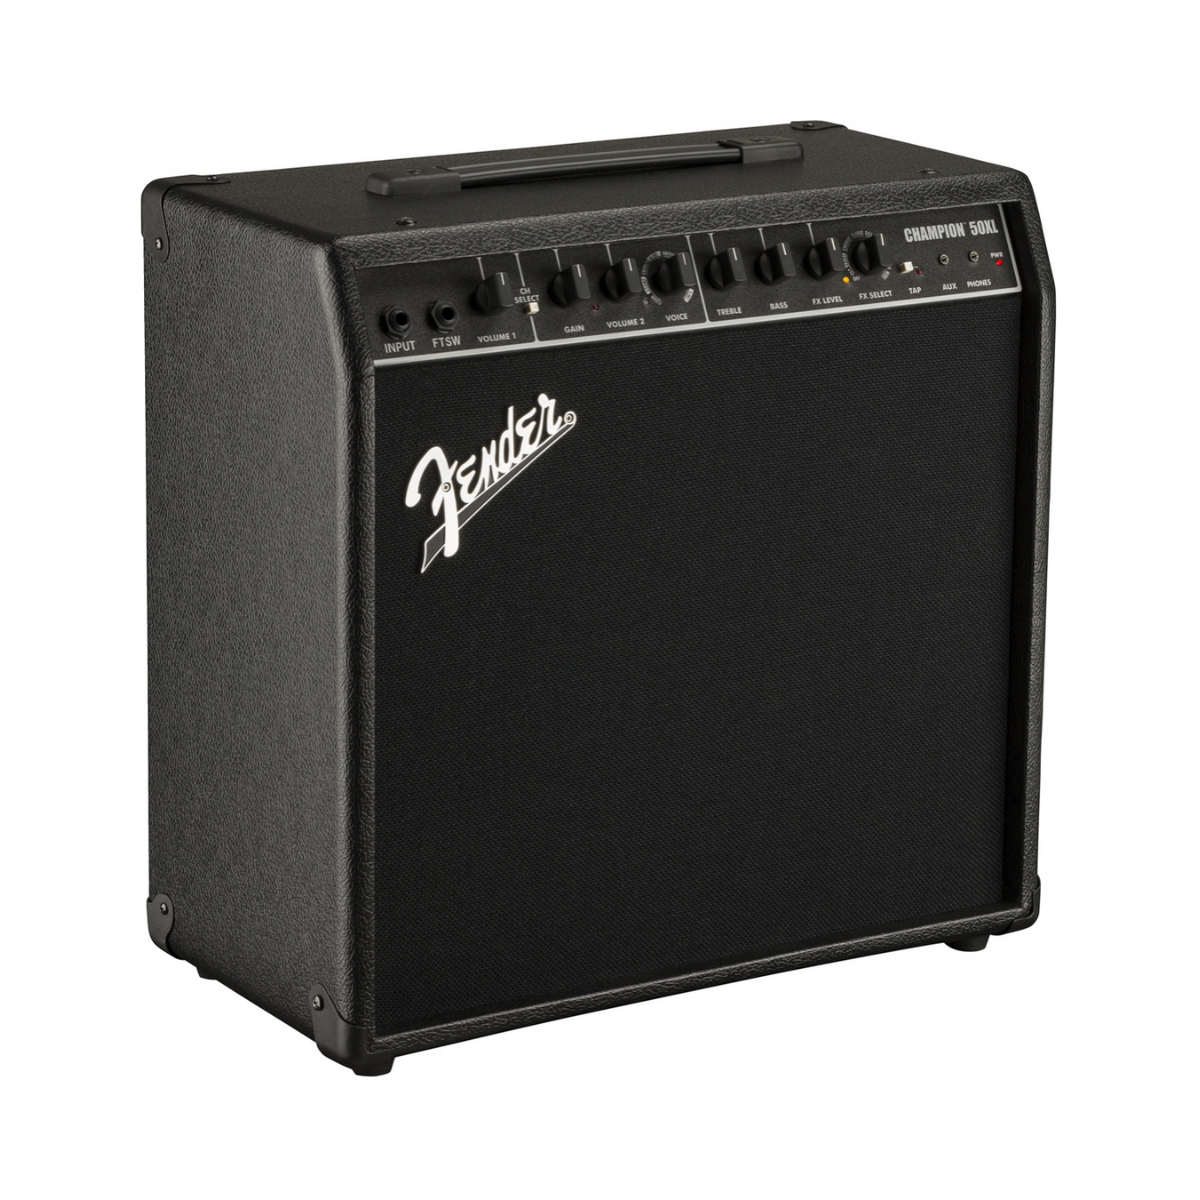 AMPLIFICADOR CHAMPION 50XL 120V